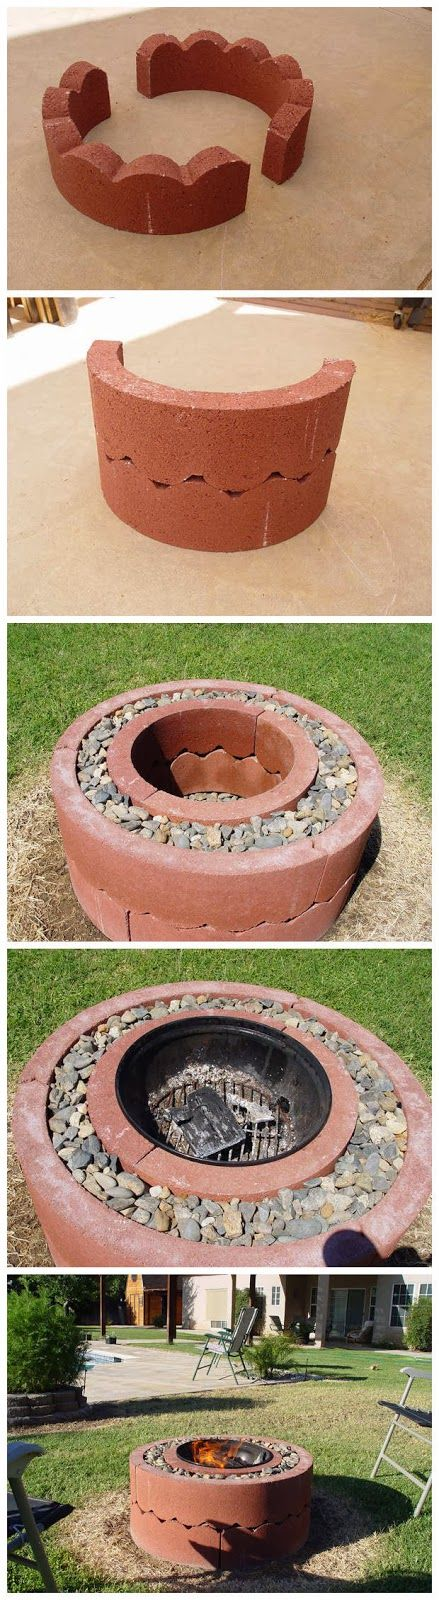 joybobo: $50 fire pit using concrete tree rings